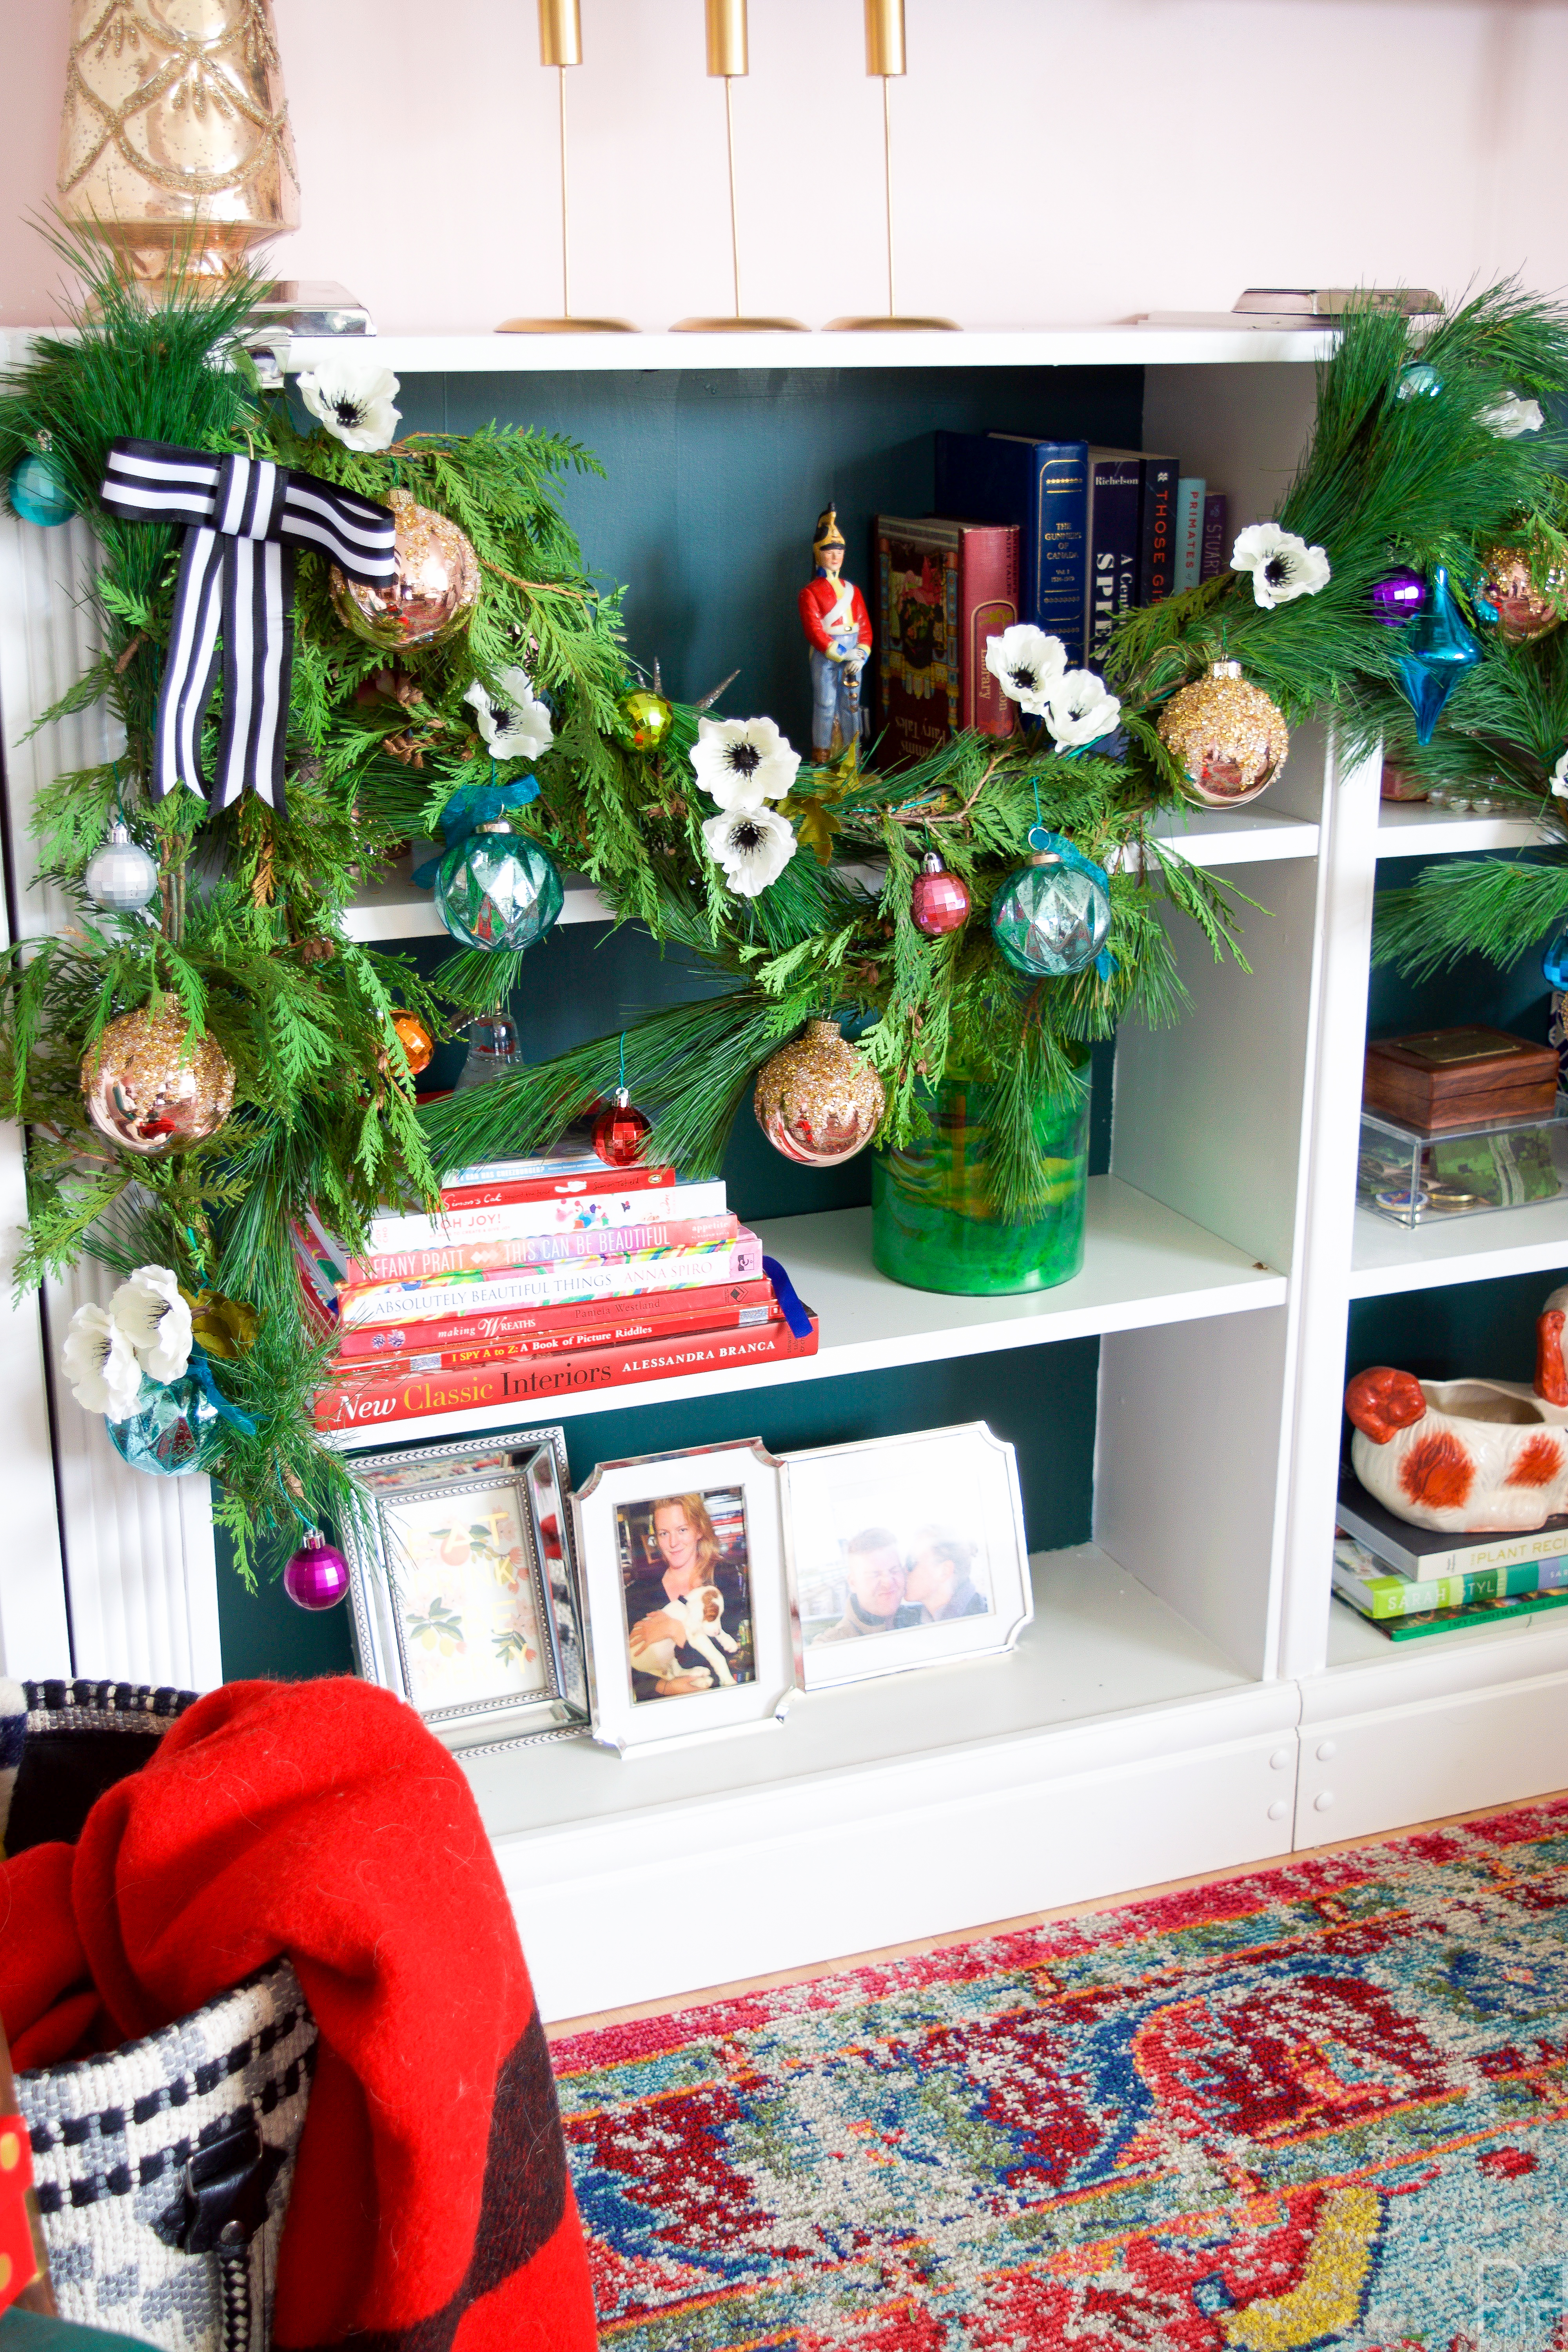 Colourful \u0026 Eclectic Holiday Mantel \u2022 PMQ for two